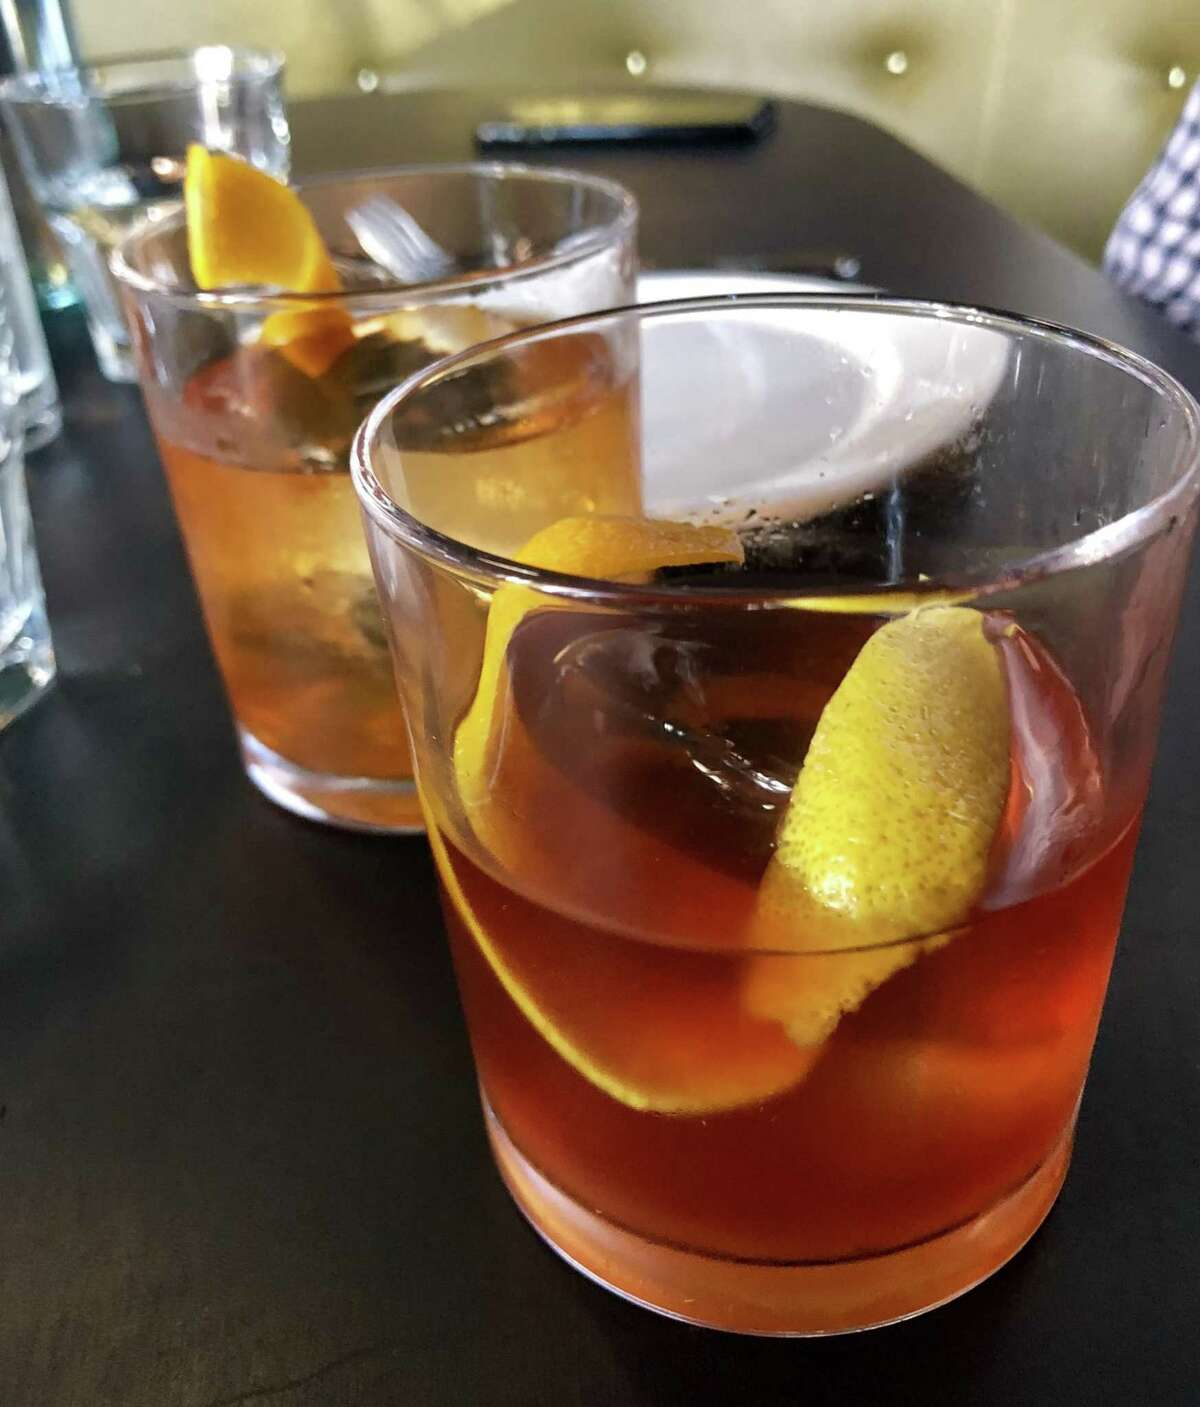 Cocktails, including the manhattan (rear), are well-crafted and spiritous.